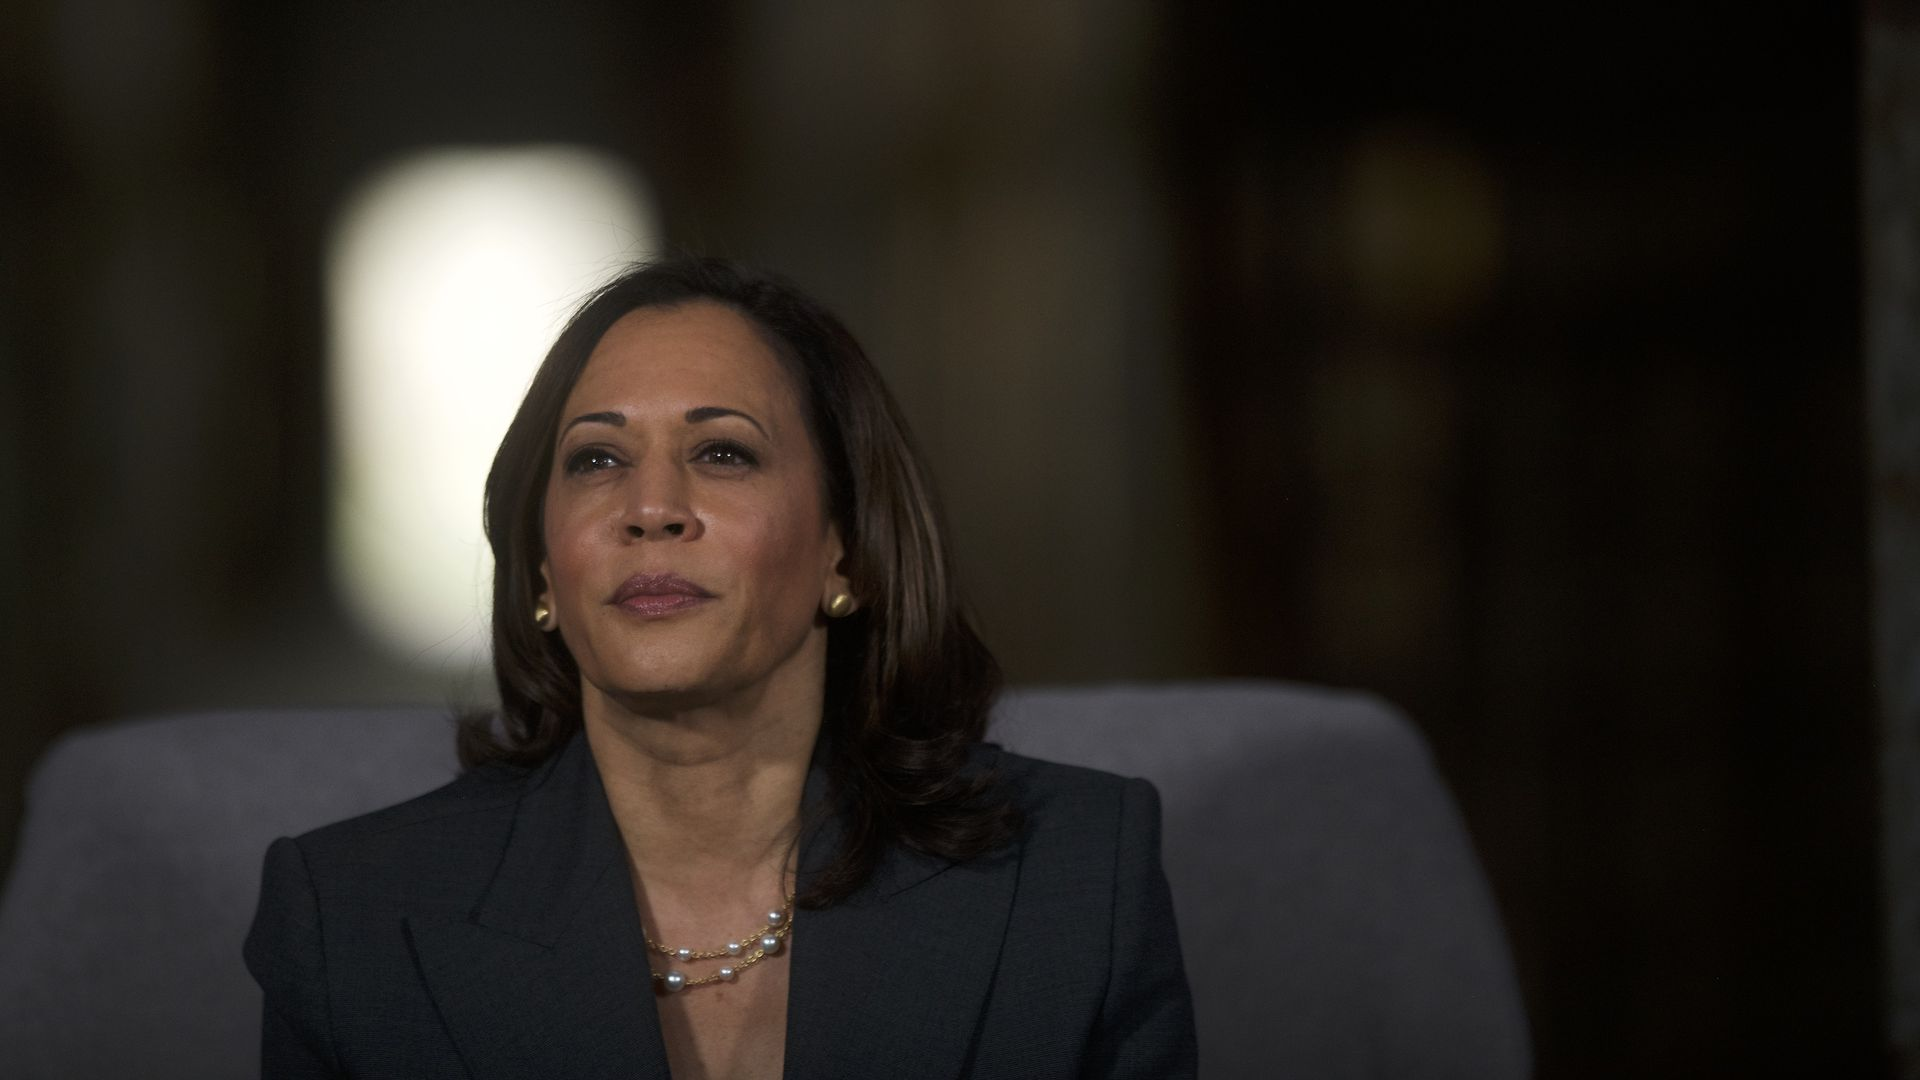 In this image, Kamala Harris sits and looks to the left